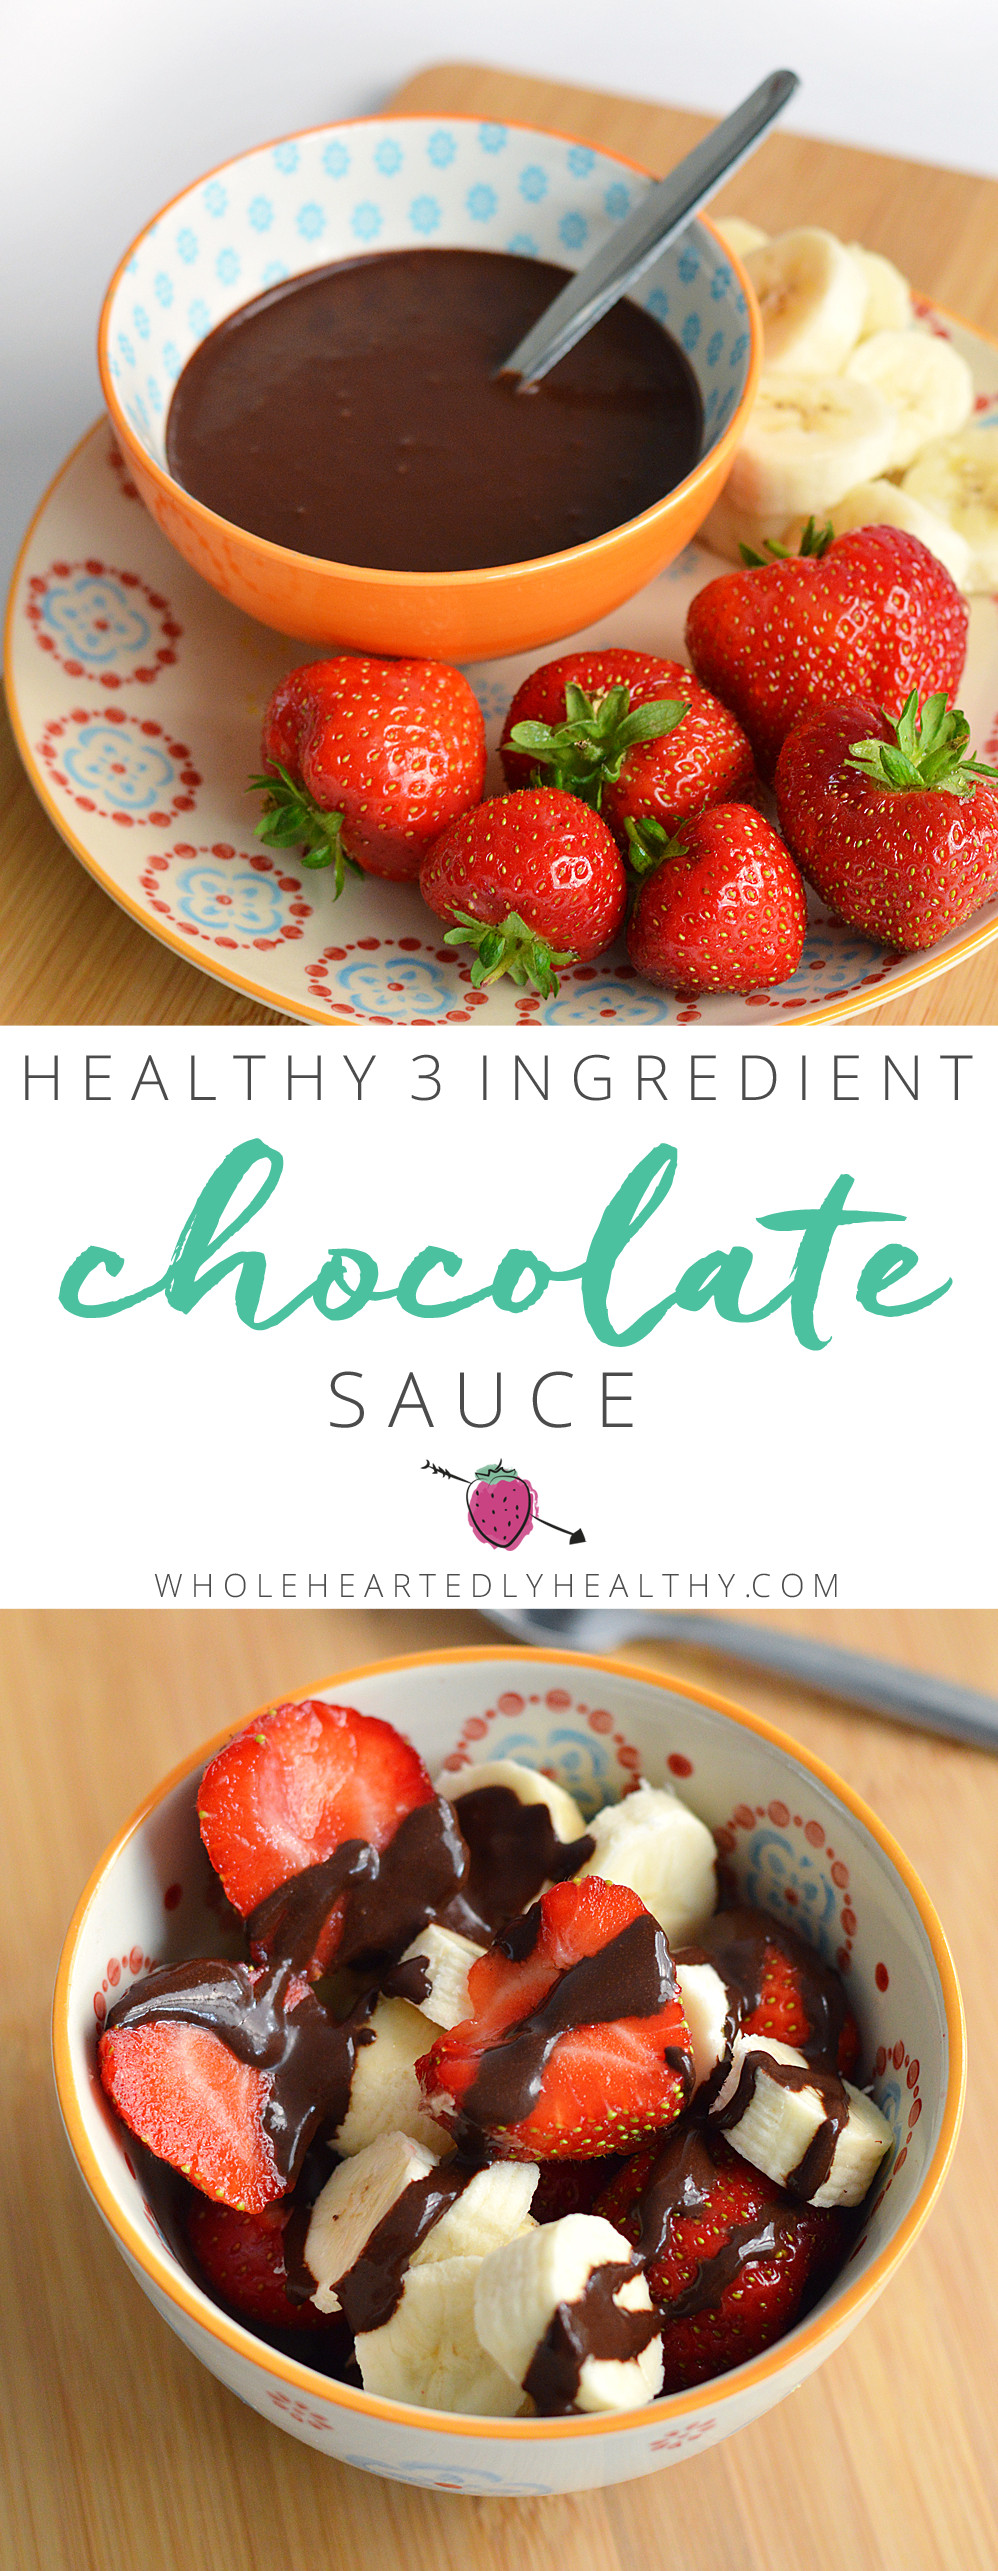 Healthy Chocolate Sauce  Healthy 3 Ingre nt Chocolate Sauce Wholeheartedly